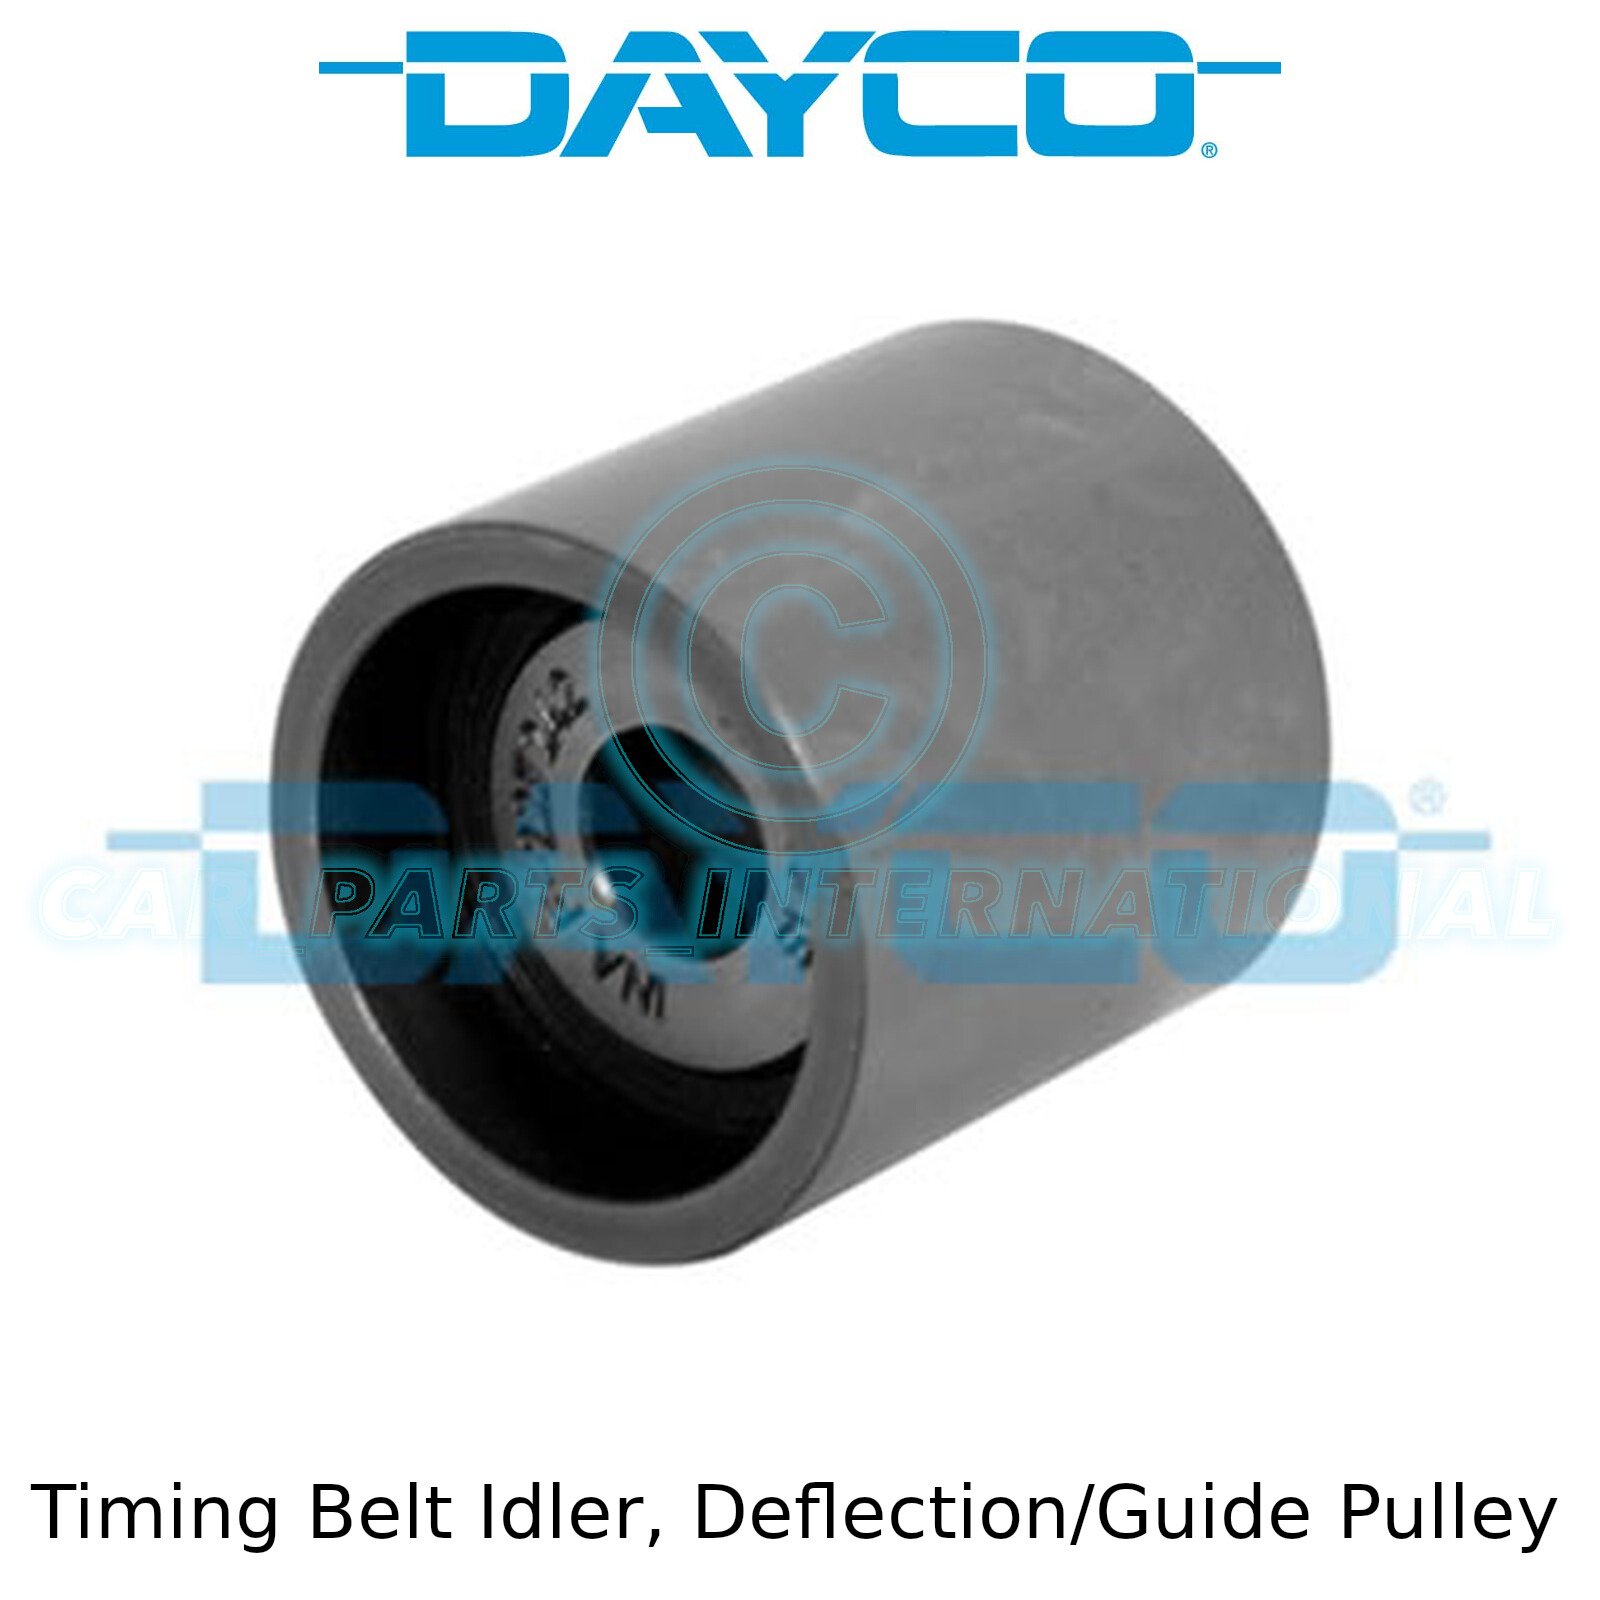 Deflection//Guide Pulley OE Quality Dayco Timing Belt Idler ATB2505